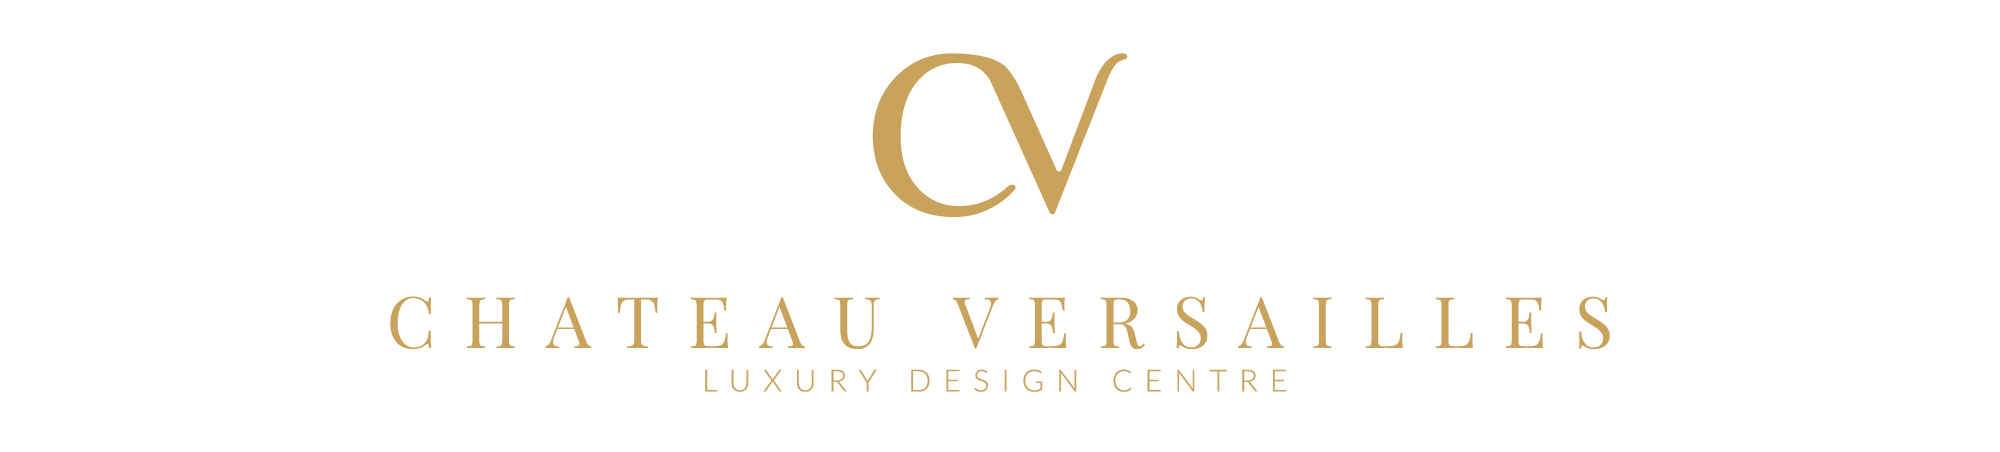 Chateau Versailles Luxury Design Centre | CV Furniture Gallery